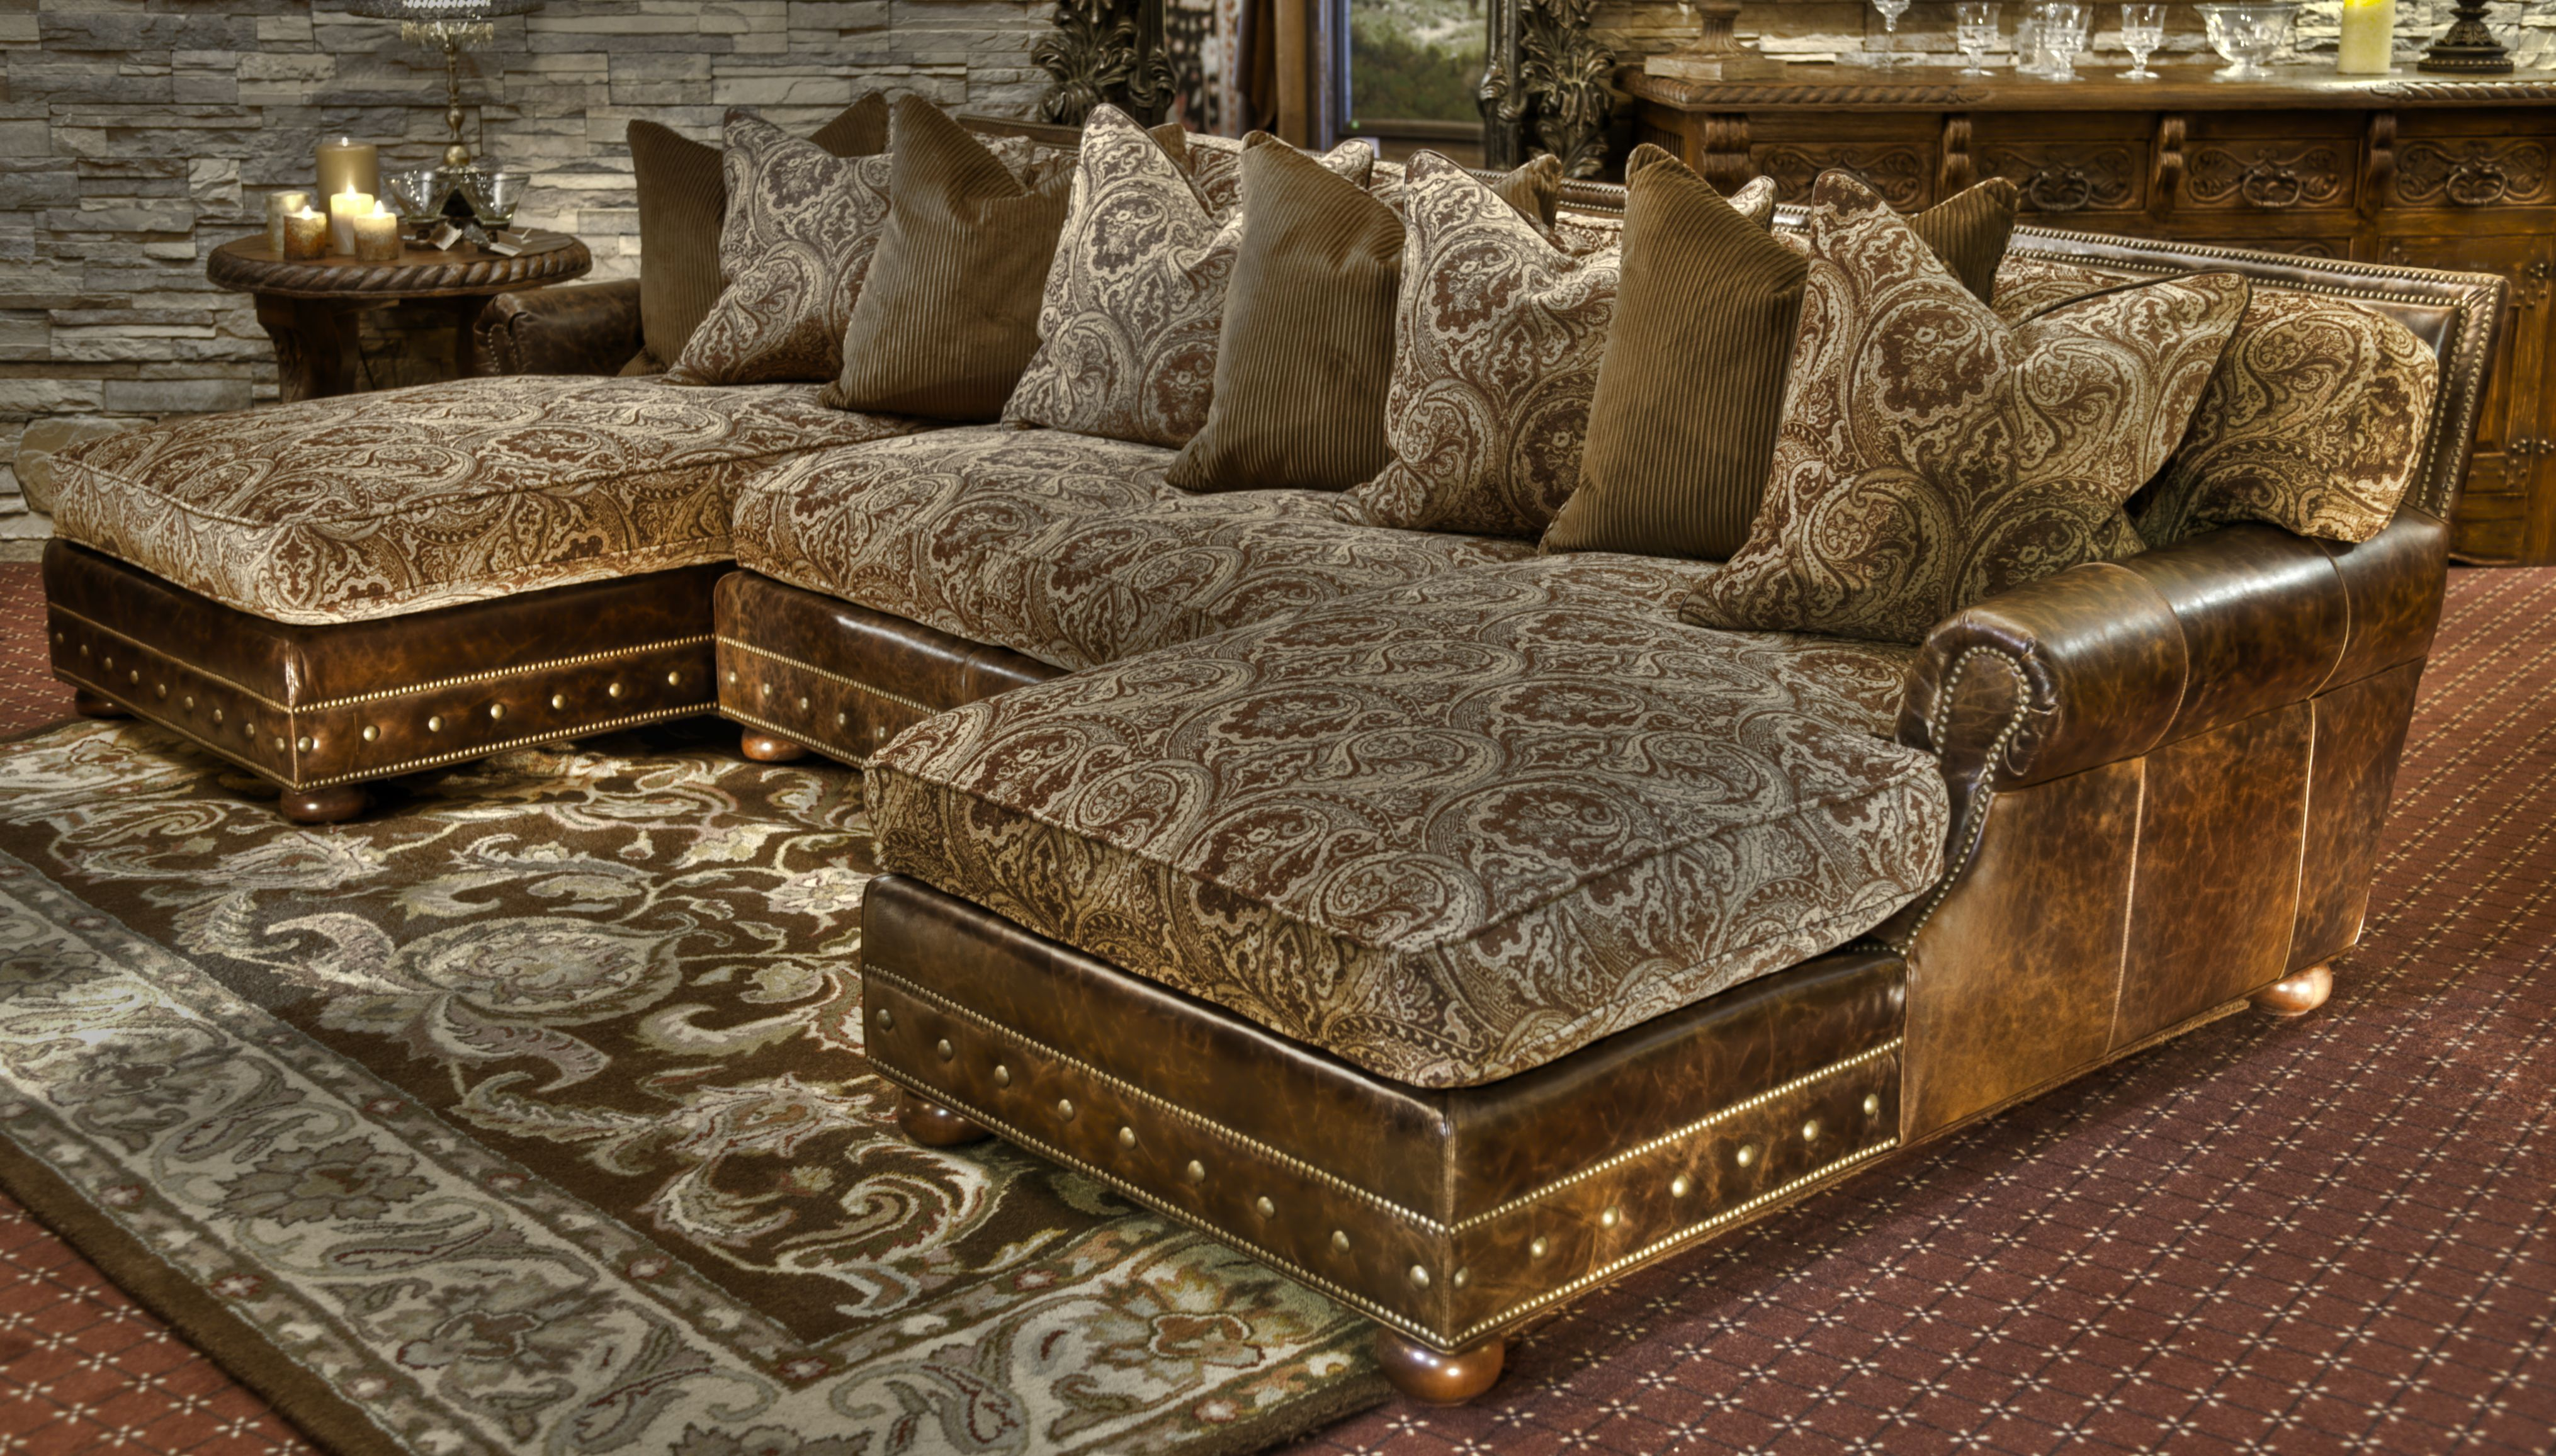 Brumbaugh S Fine Home Furnishings Furniture Rustic Style Furniture Distressed Leather Sofa Paisley couch living room furniture